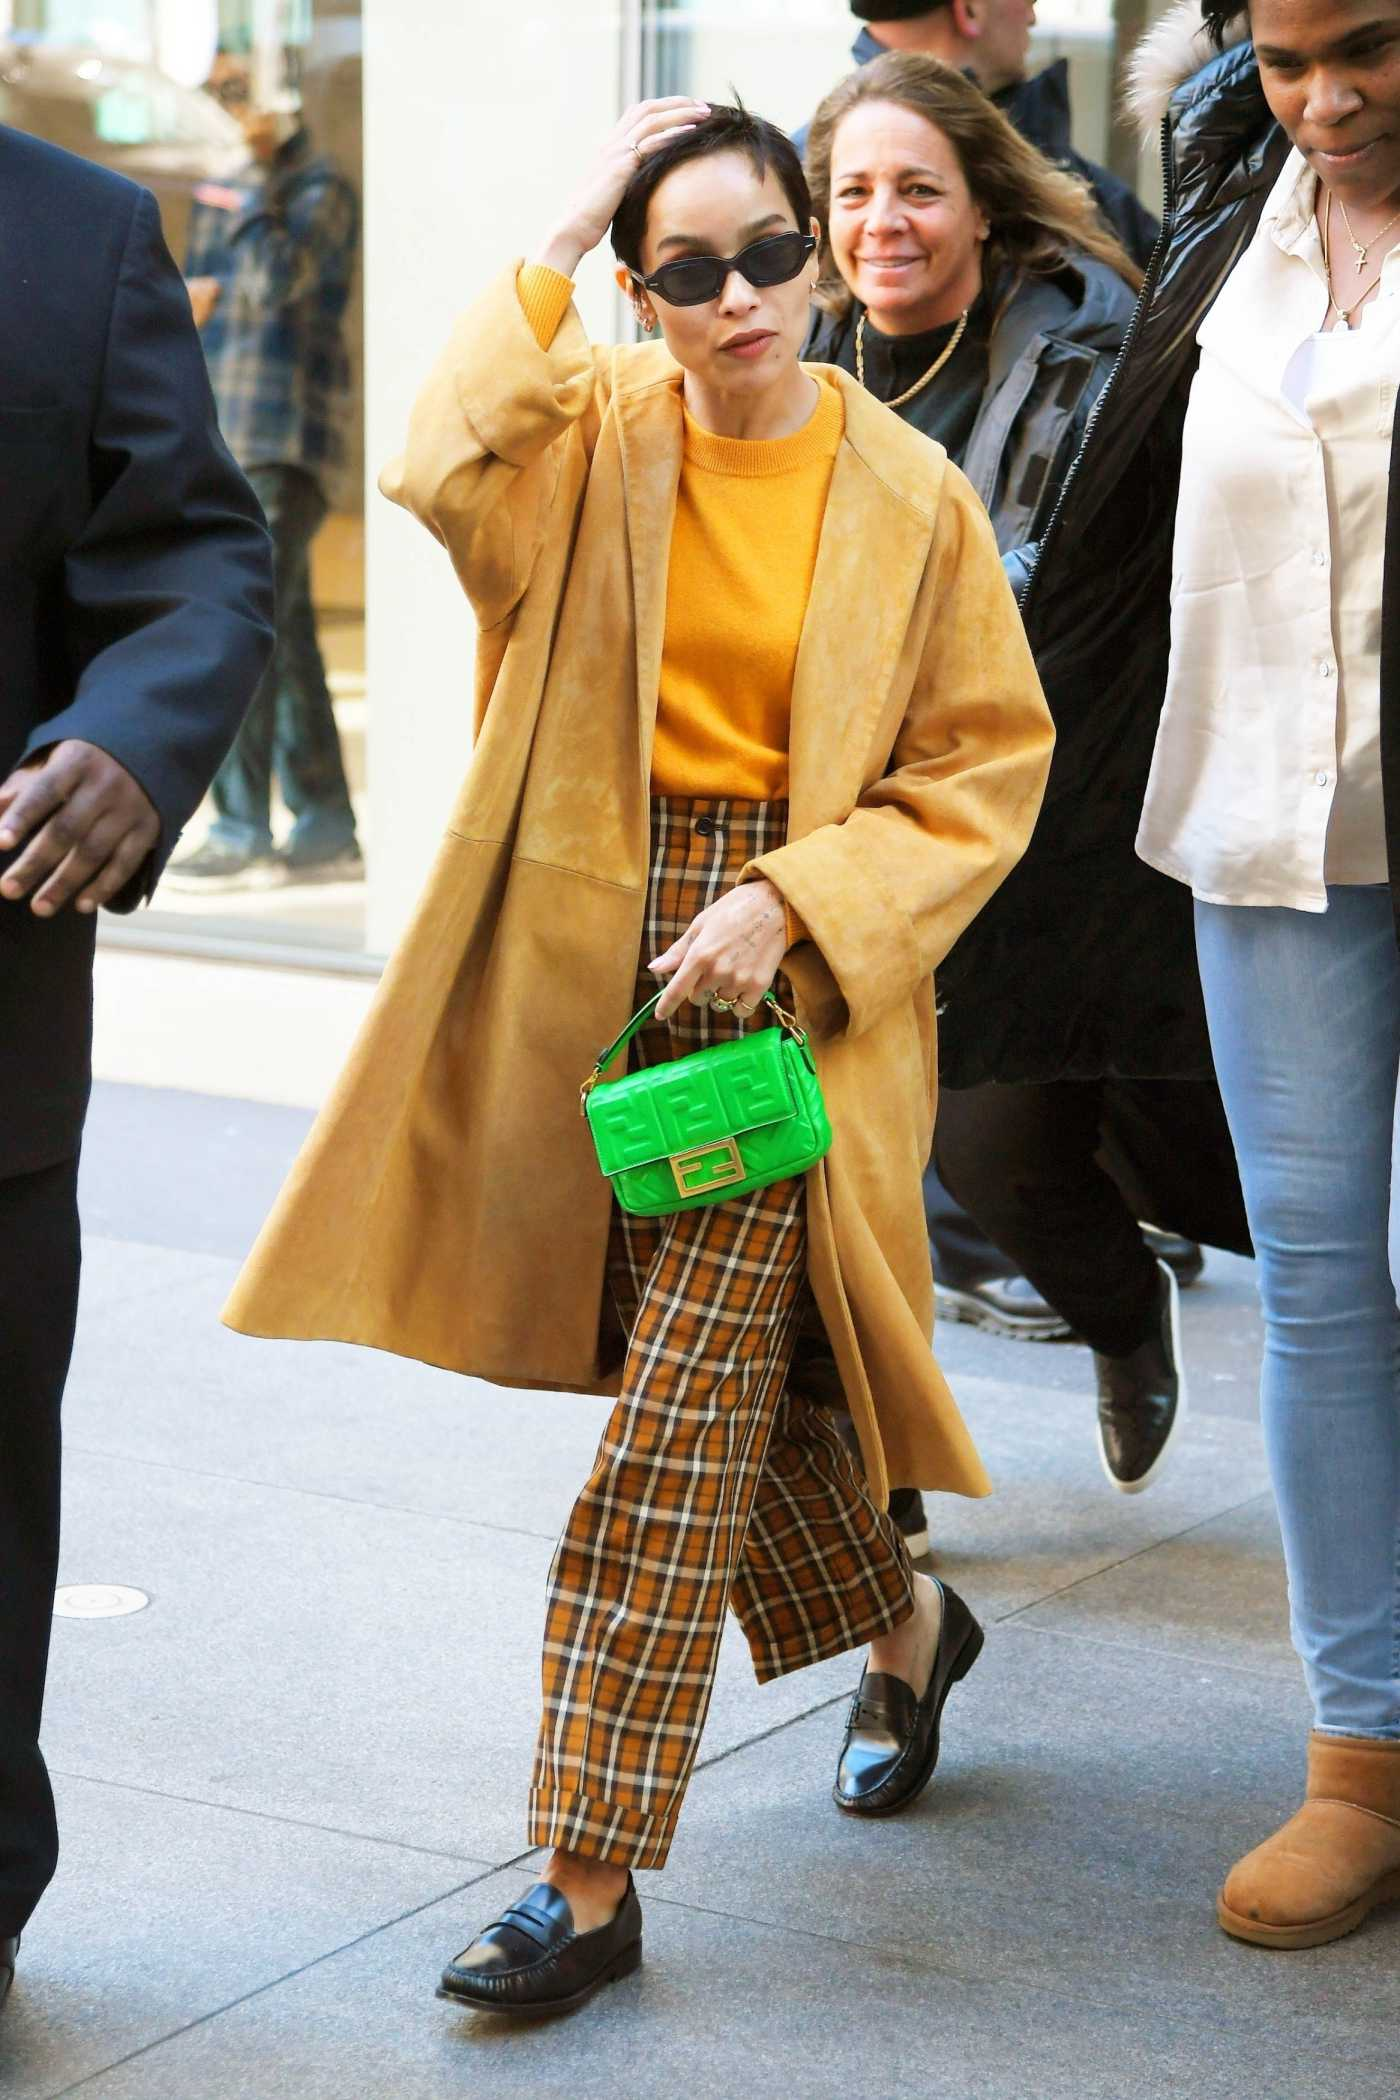 Zoe Kravitz in a Yellow Trench Coat Leaves SiriusXM Townhall in NYC 02/14/2020